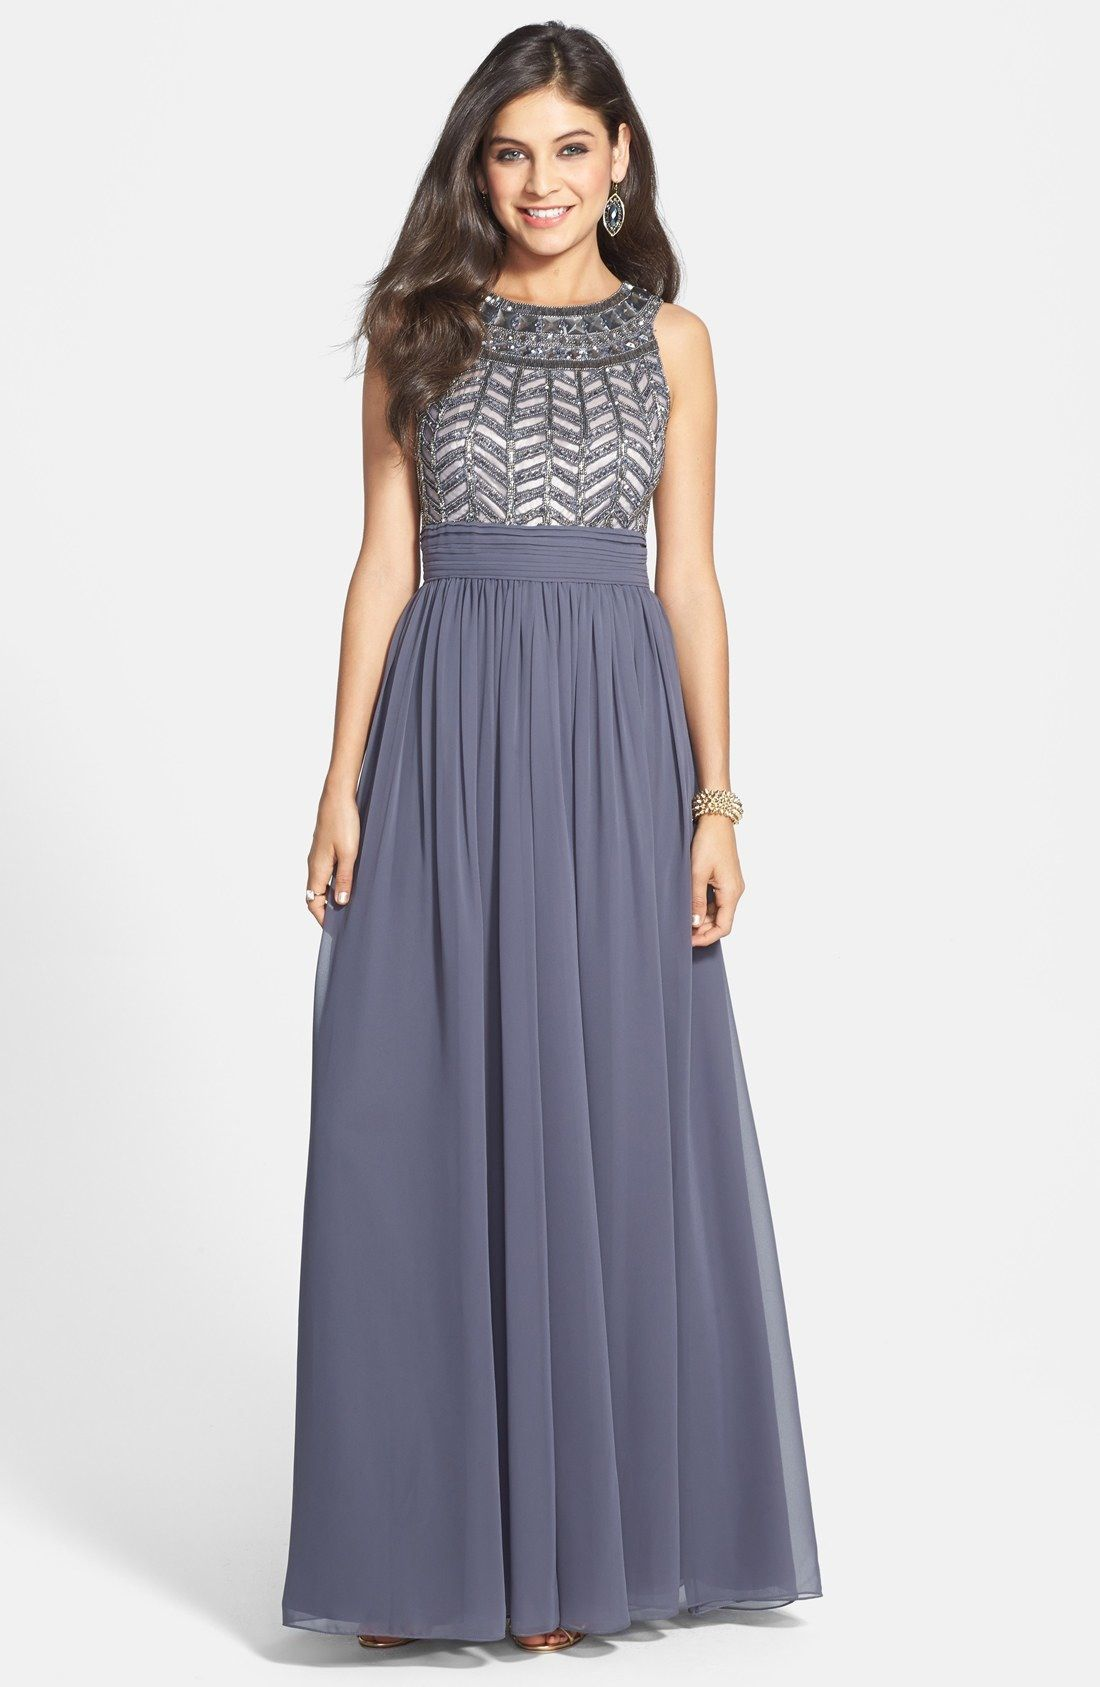 Js collections embellished chiffon gown available at nordstrom